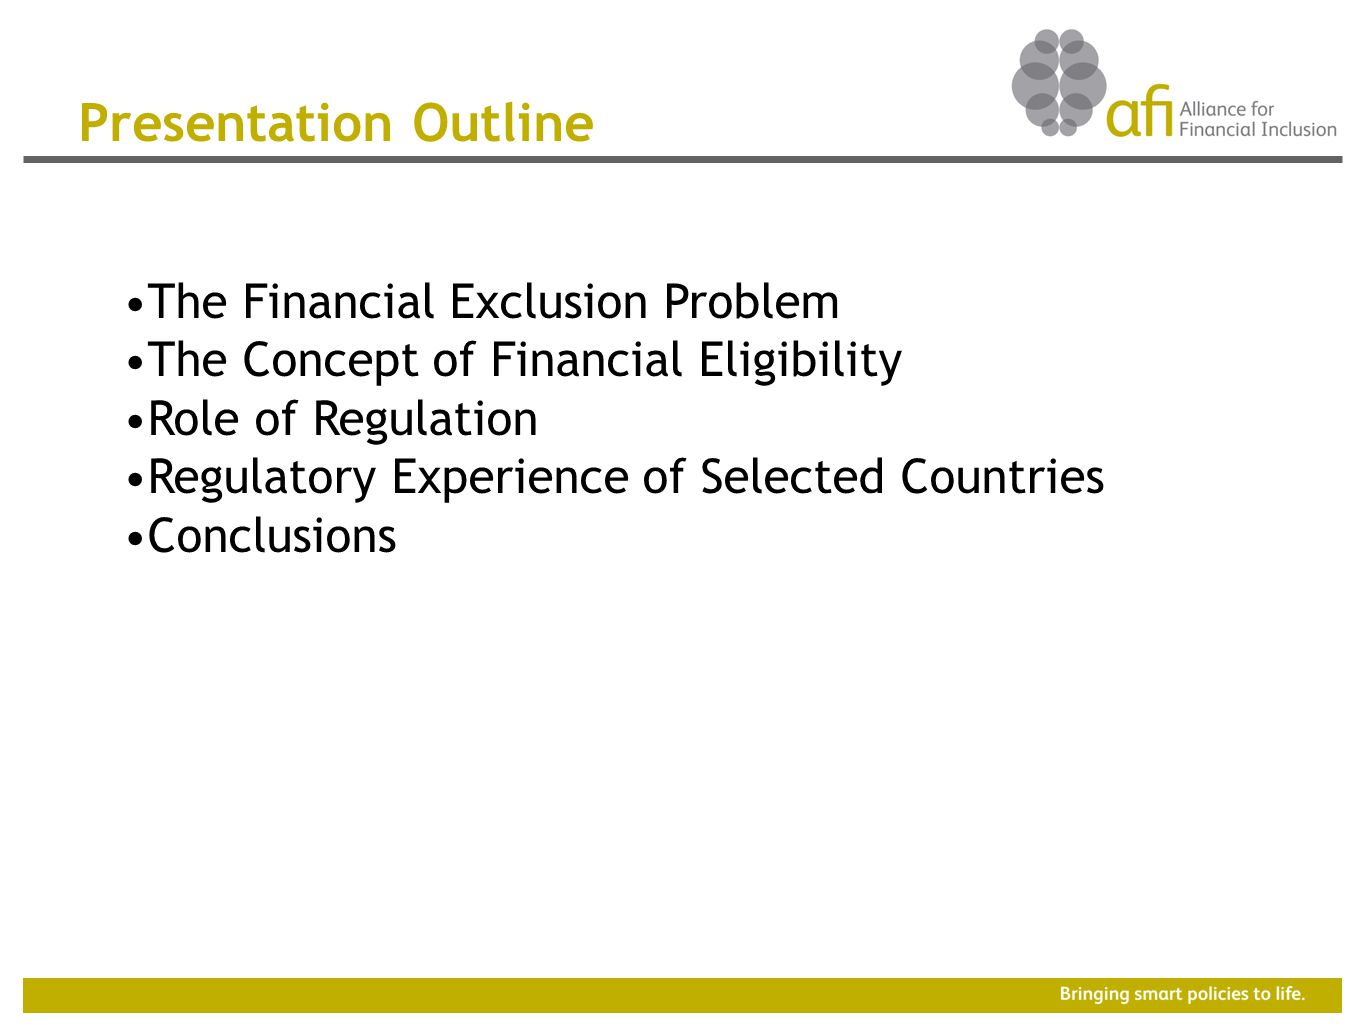 Presentation Outline The Financial Exclusion Problem The Concept of Financial Eligibility Role of Regulation Regulatory Experience of Selected Countries Conclusions